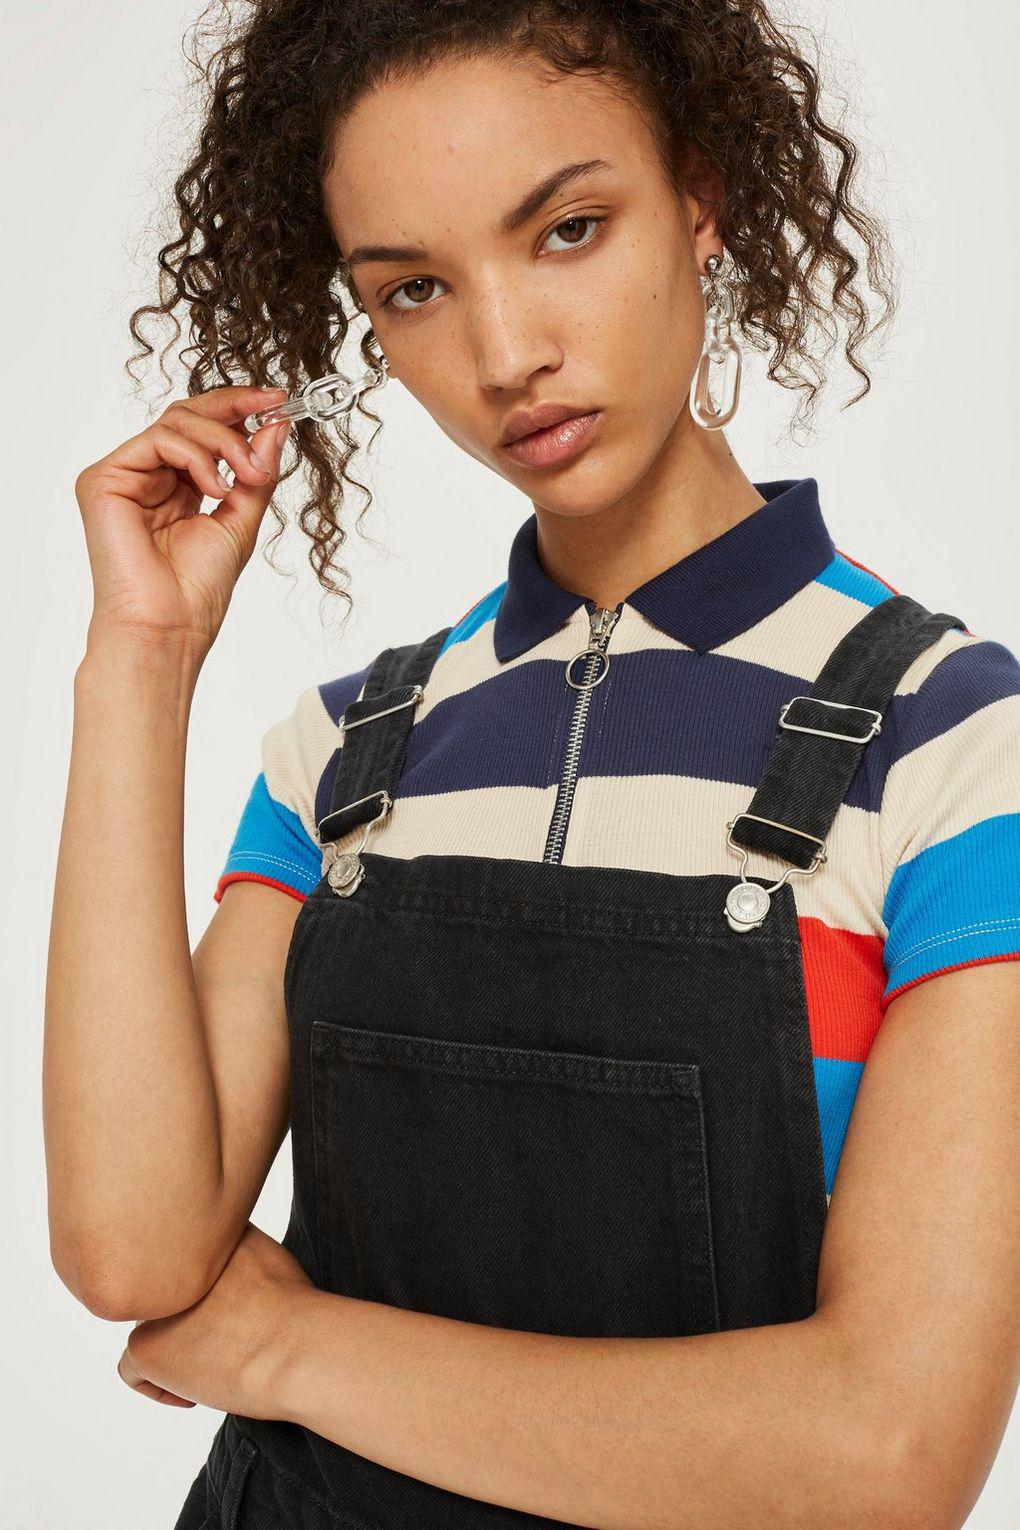 Topshop Slim Leg Dungarees in Black - Lyst 173a9f1605d51